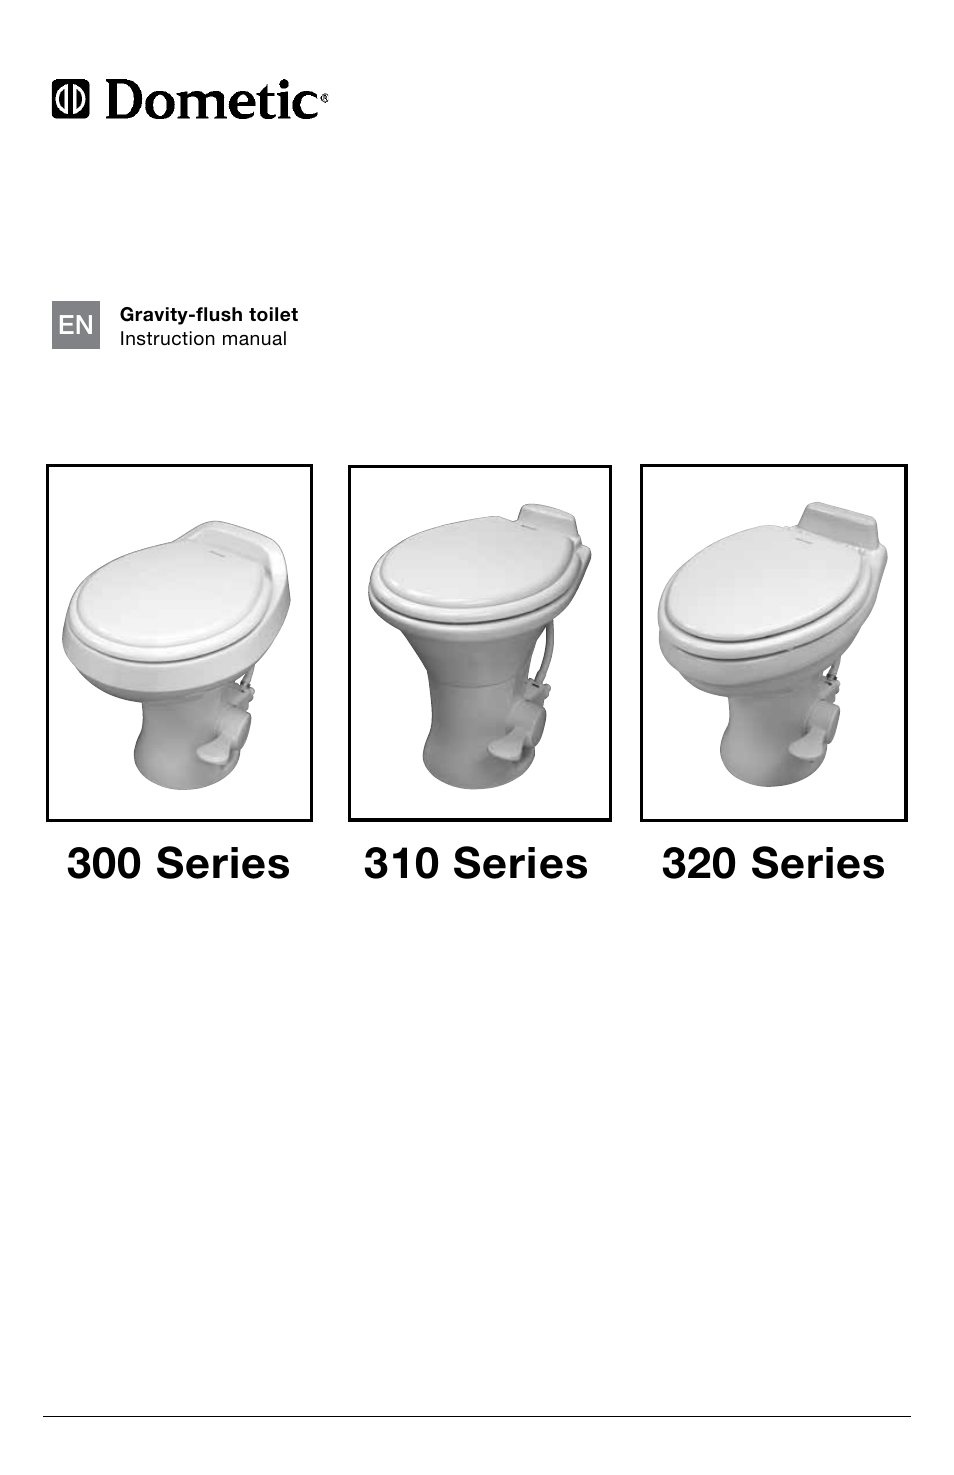 SeaLand 320 Series RV Toilet User Manual   16 pages   Also for: 310 ...